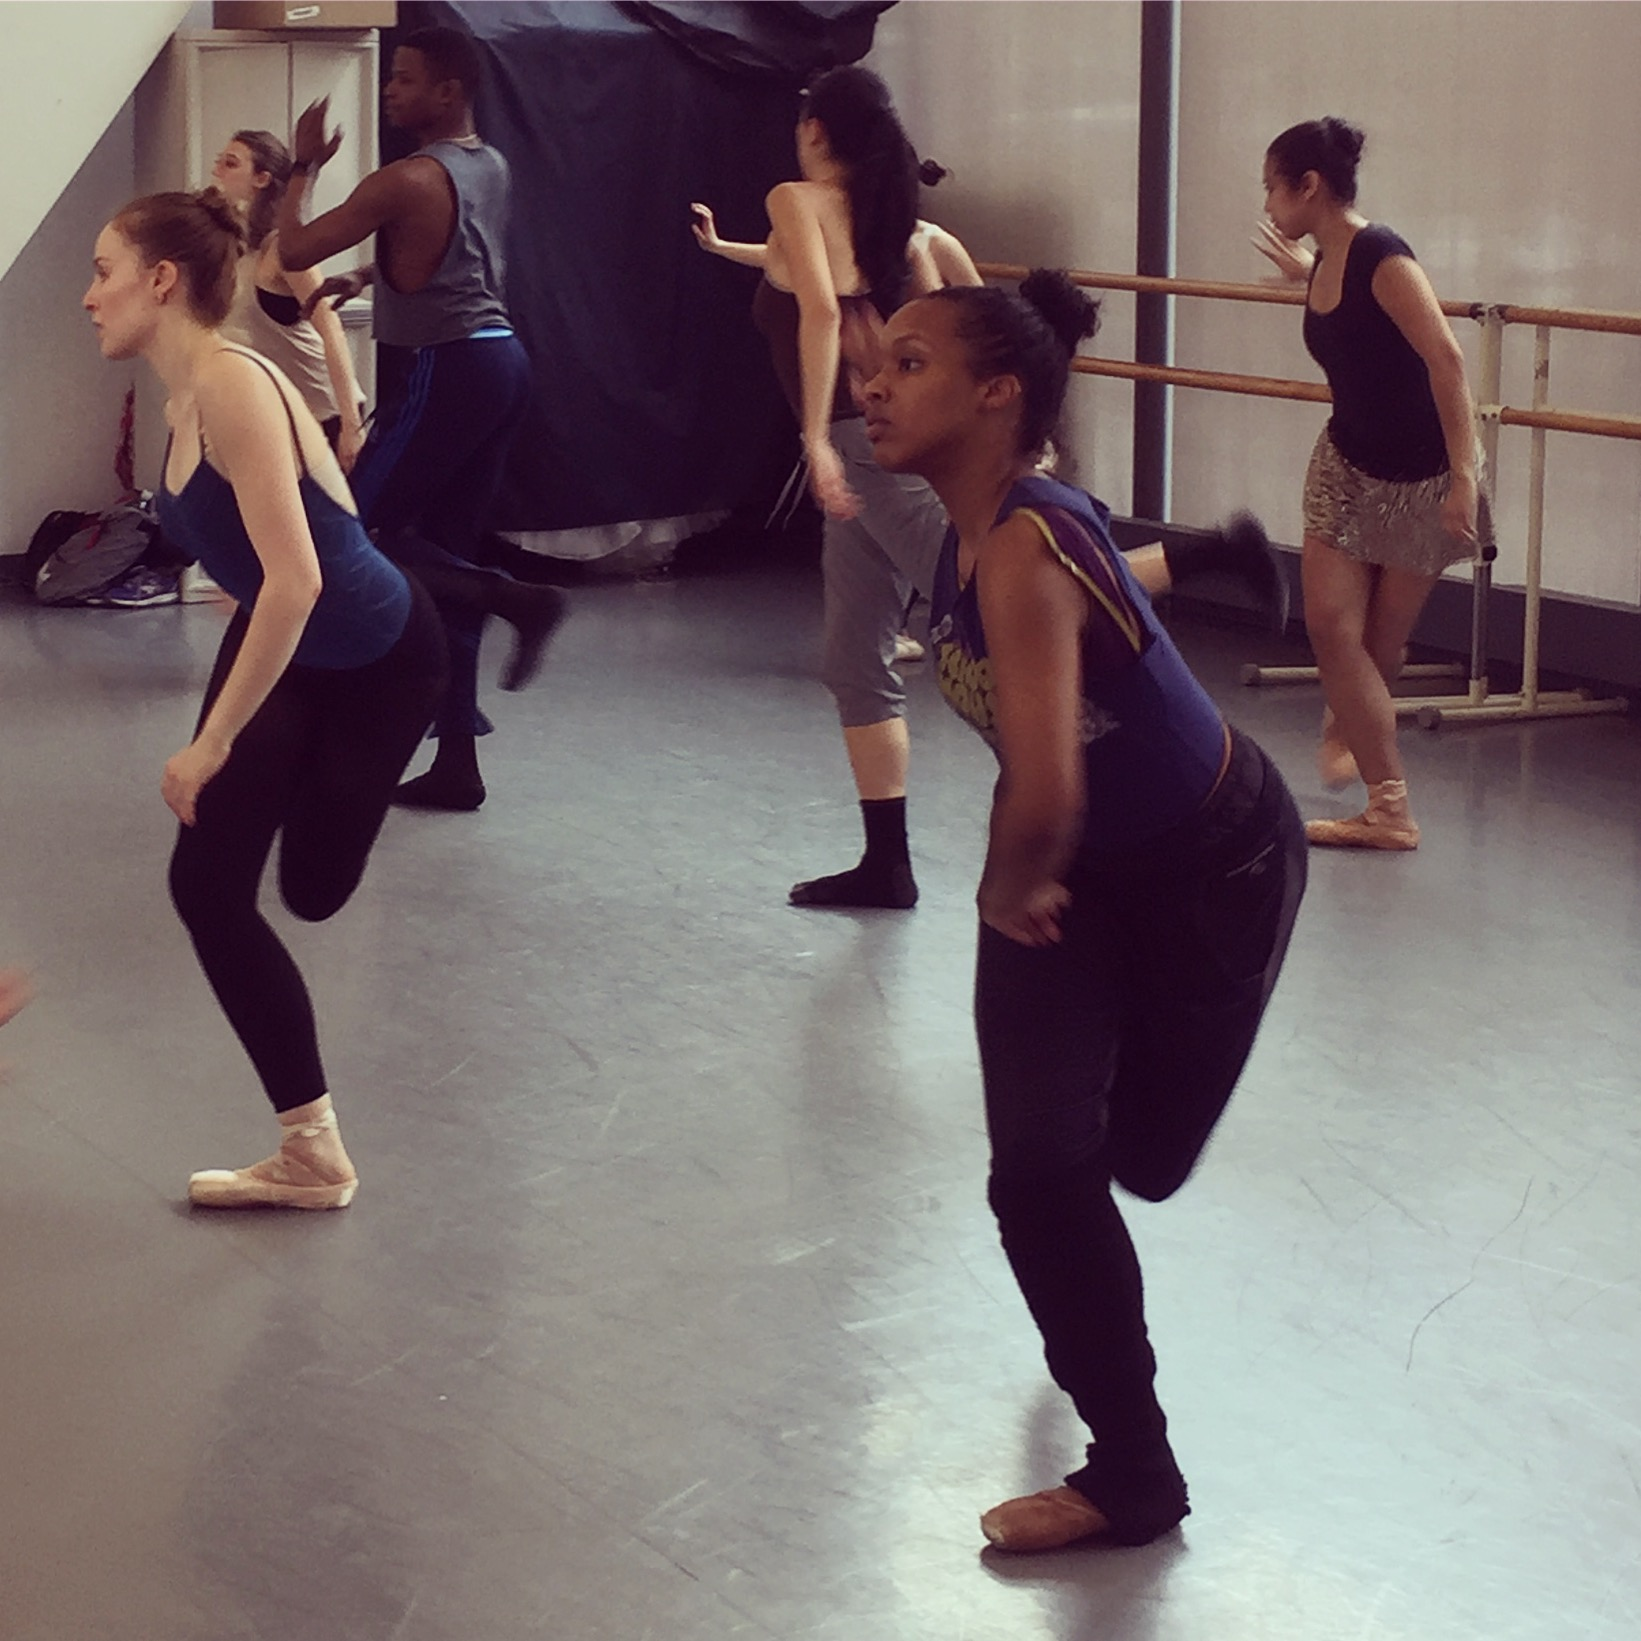 Brooklyn Ballet dancers, Elizabeth Sherlock-Lewis Tollett, Courtney Cochran, Acee Francis, Christine Sawyer and members of Gleich Dances developing the Martha stories in rehearsal.